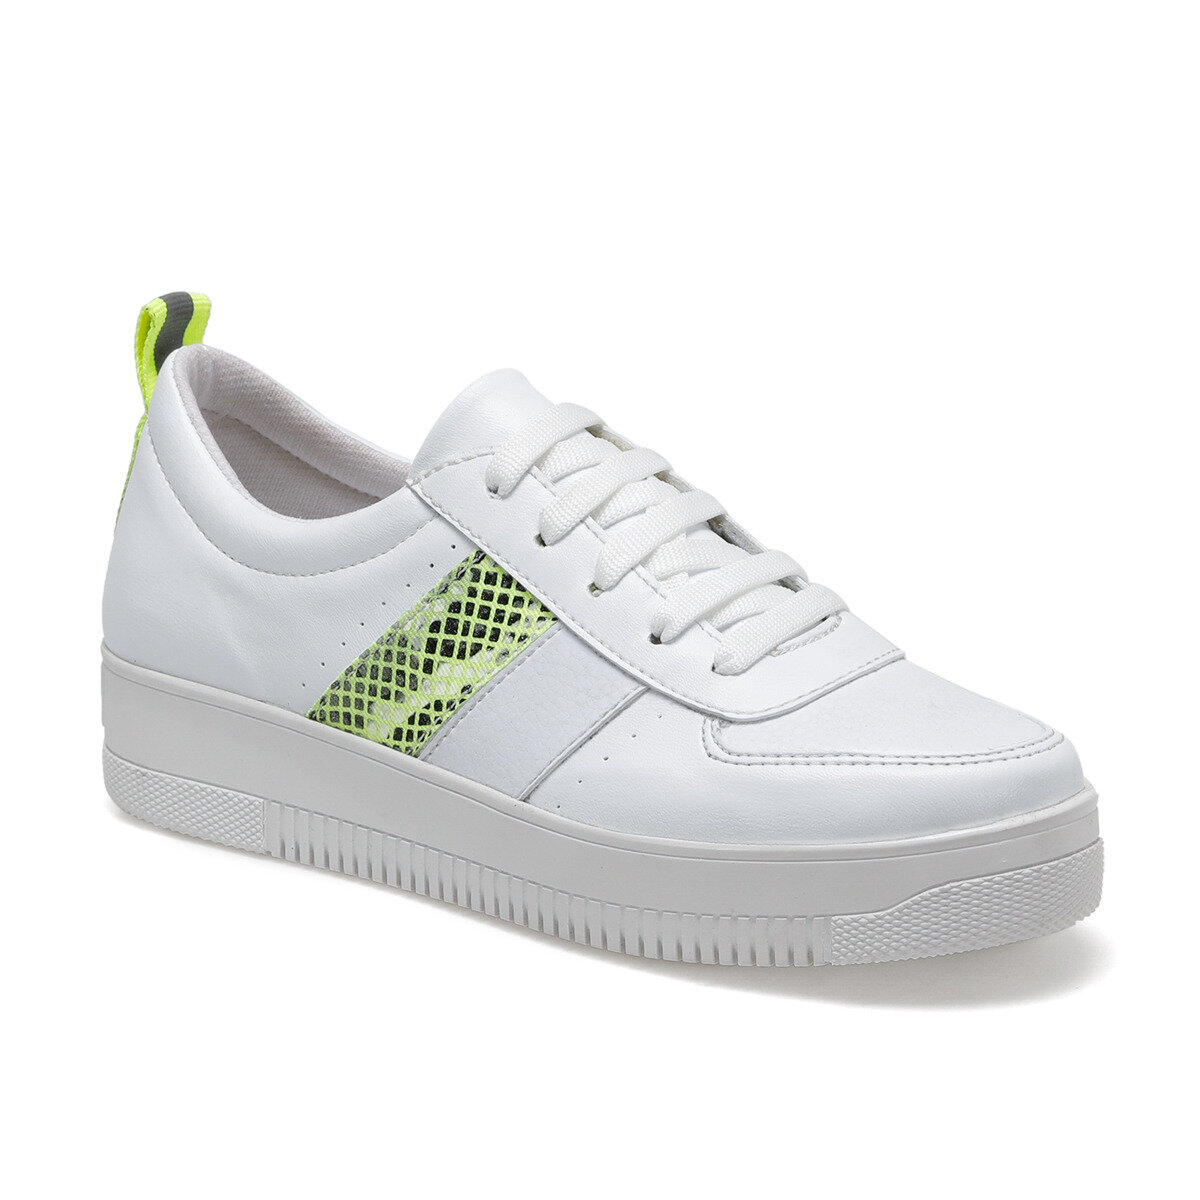 FLO 20S-327 White Women 'S Sneaker Shoes BUTIGO